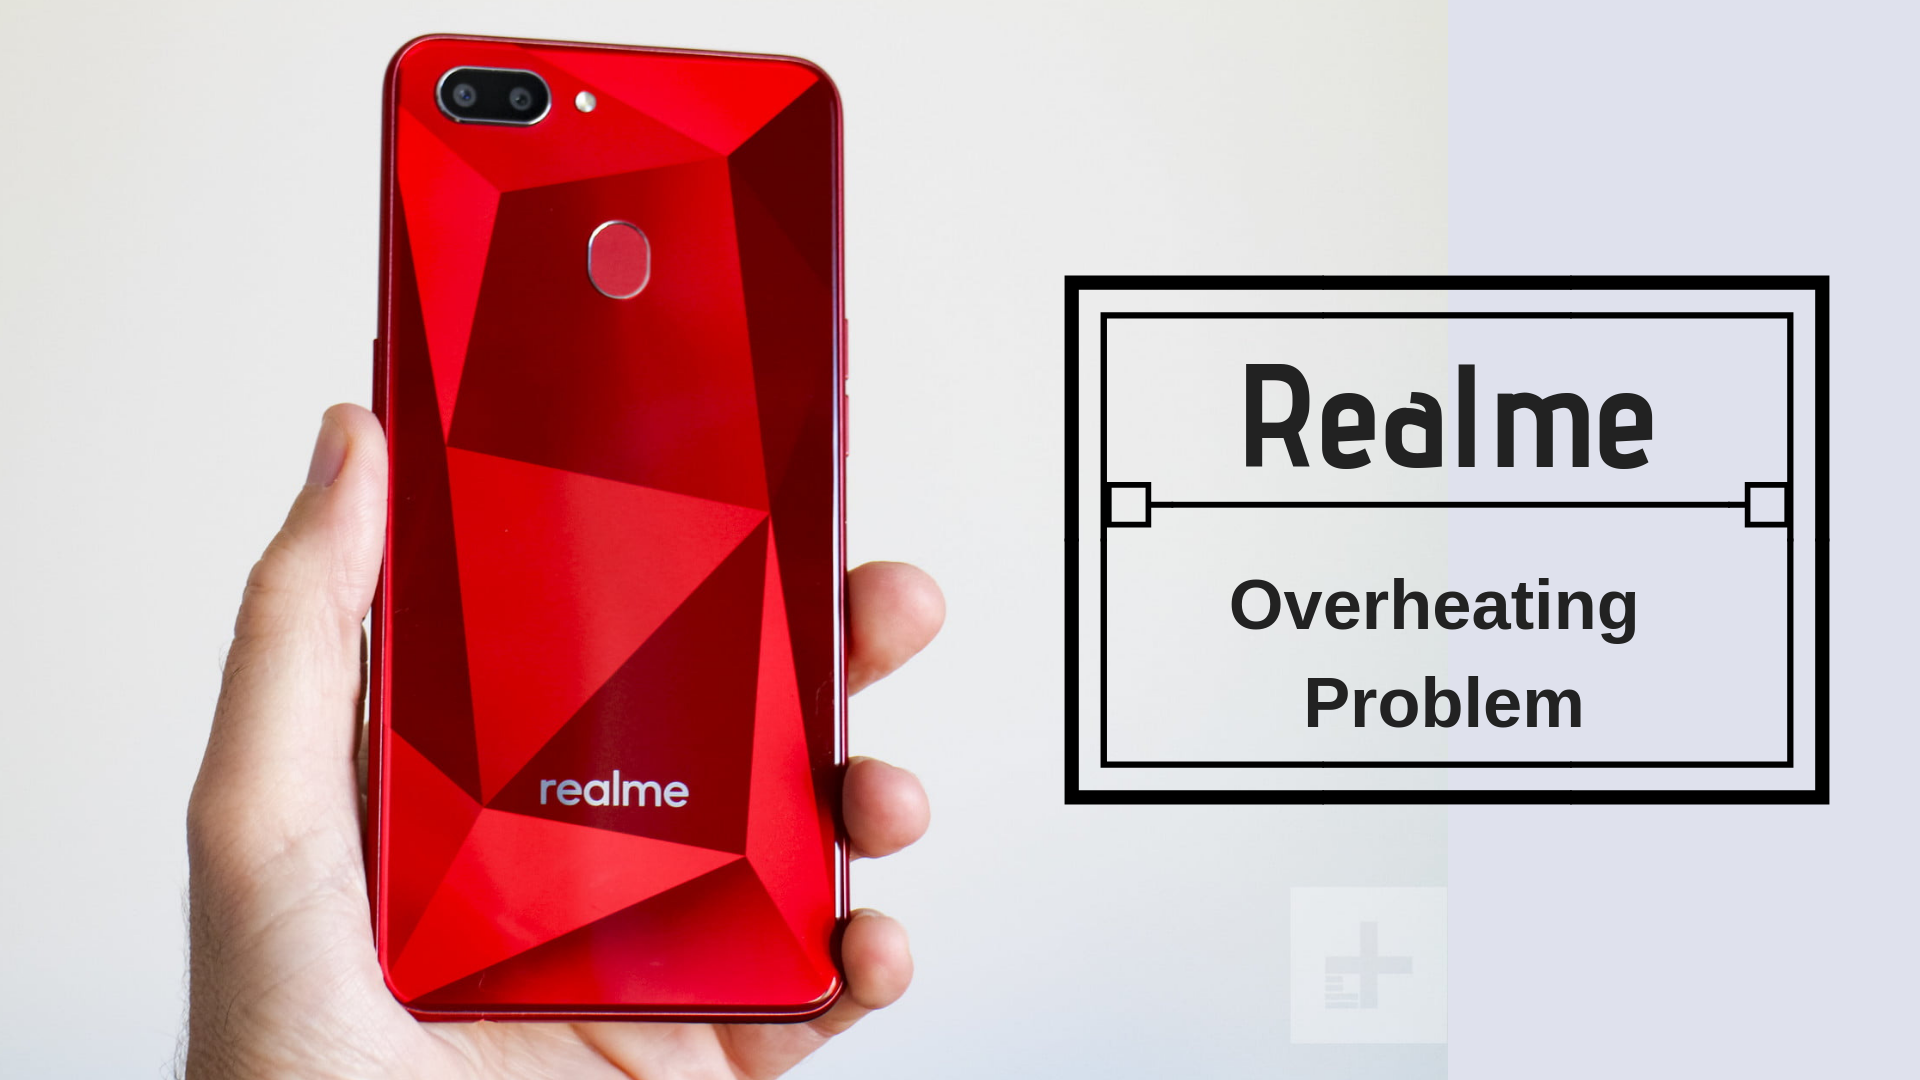 How To Fix Realme Not Charging Problem [Troubleshoot]